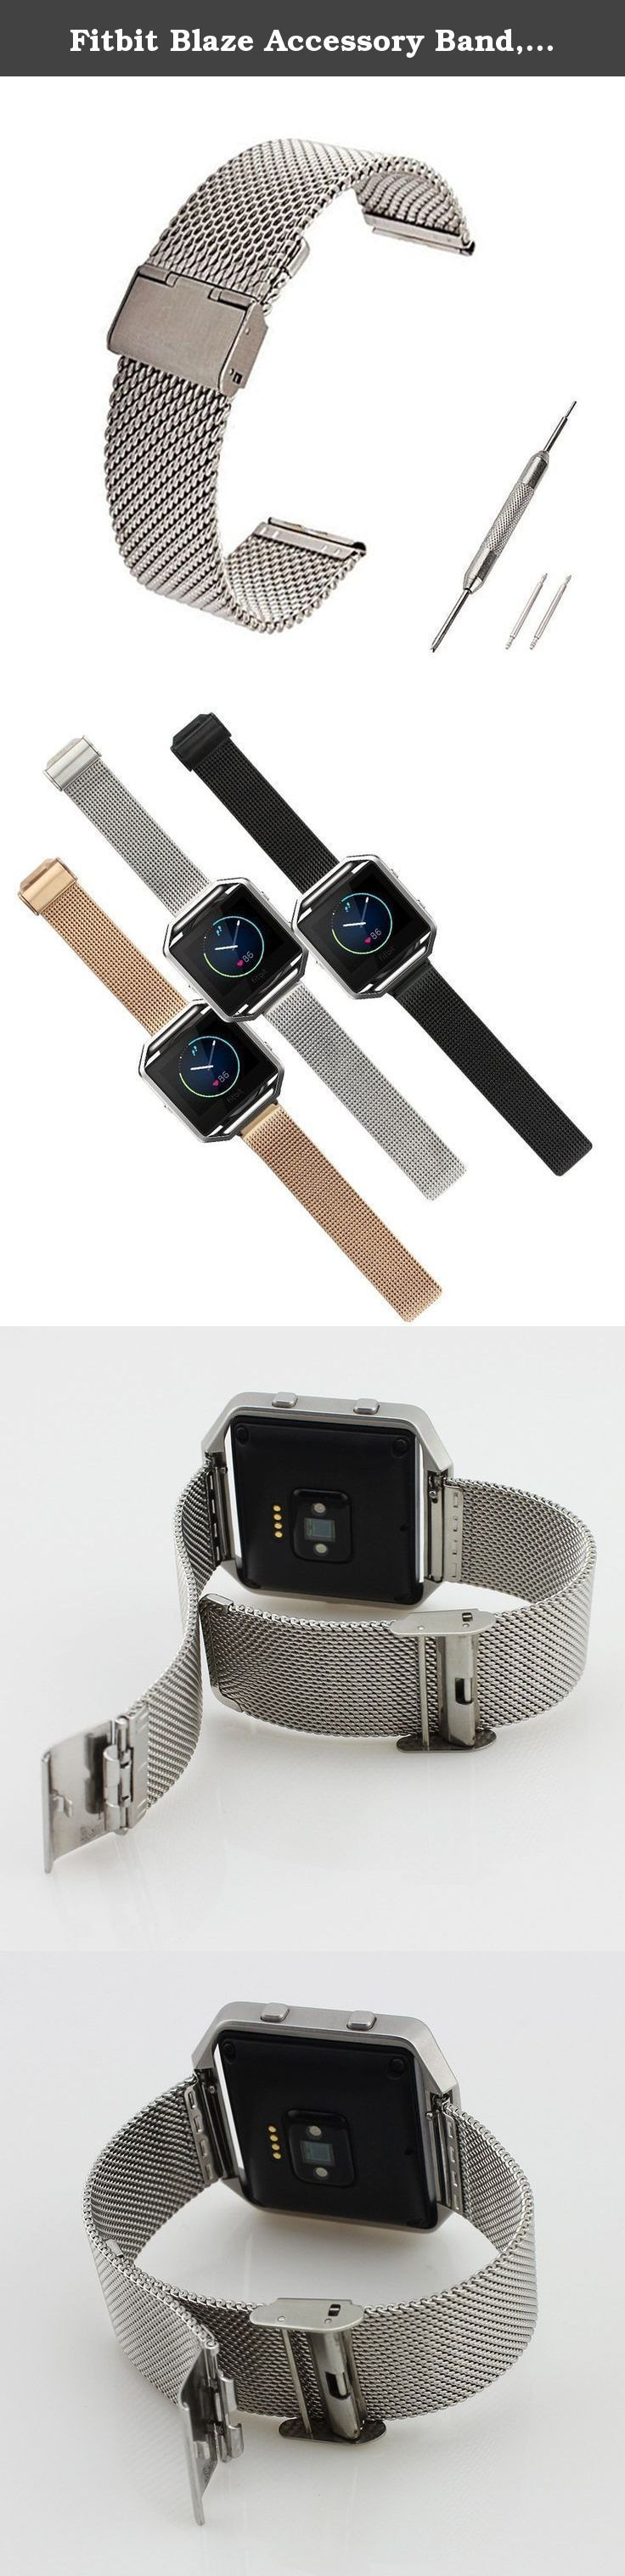 Fitbit Blaze Accessory Band, Large, Ecsem® Stainless Steel Wrist Bands Buckle for Fitbit Blaze Only / Replacement Band for Fitbit Blaze /No Tracer or other parts (Large, Mesh Silver). Fitbit Blaze Accessory Band, Ecsem® Large Stainless Steel Wrist Bands Buckle for Fitbit Blaze Only / Replacement Band for Fitbit Blaze /No Tracer or other parts.